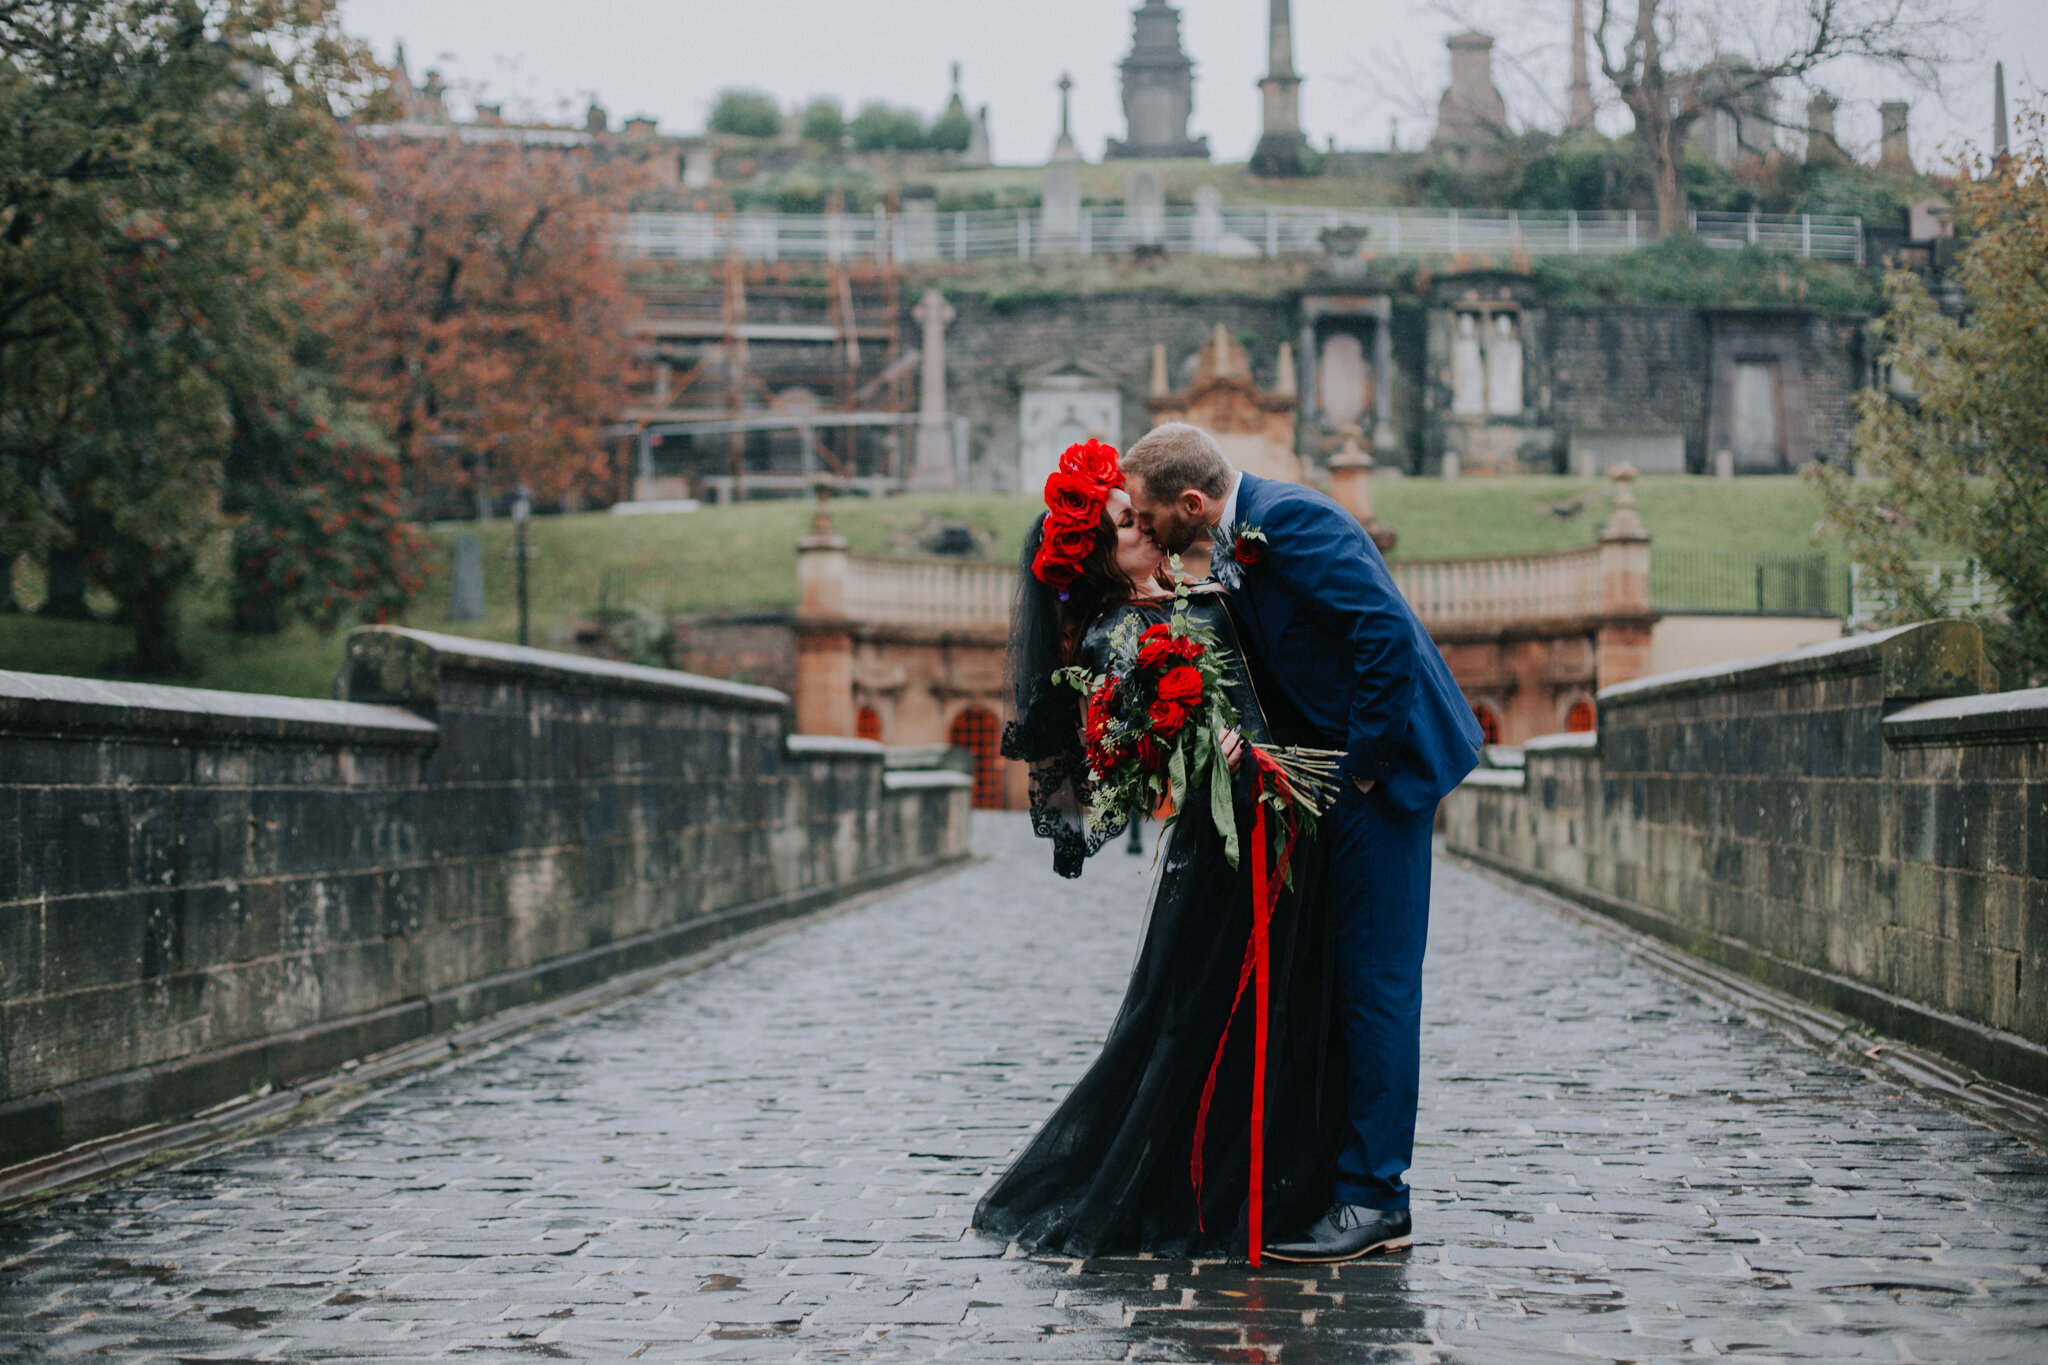 The couple is kissing on the bridge of the Glasgow Cathedral